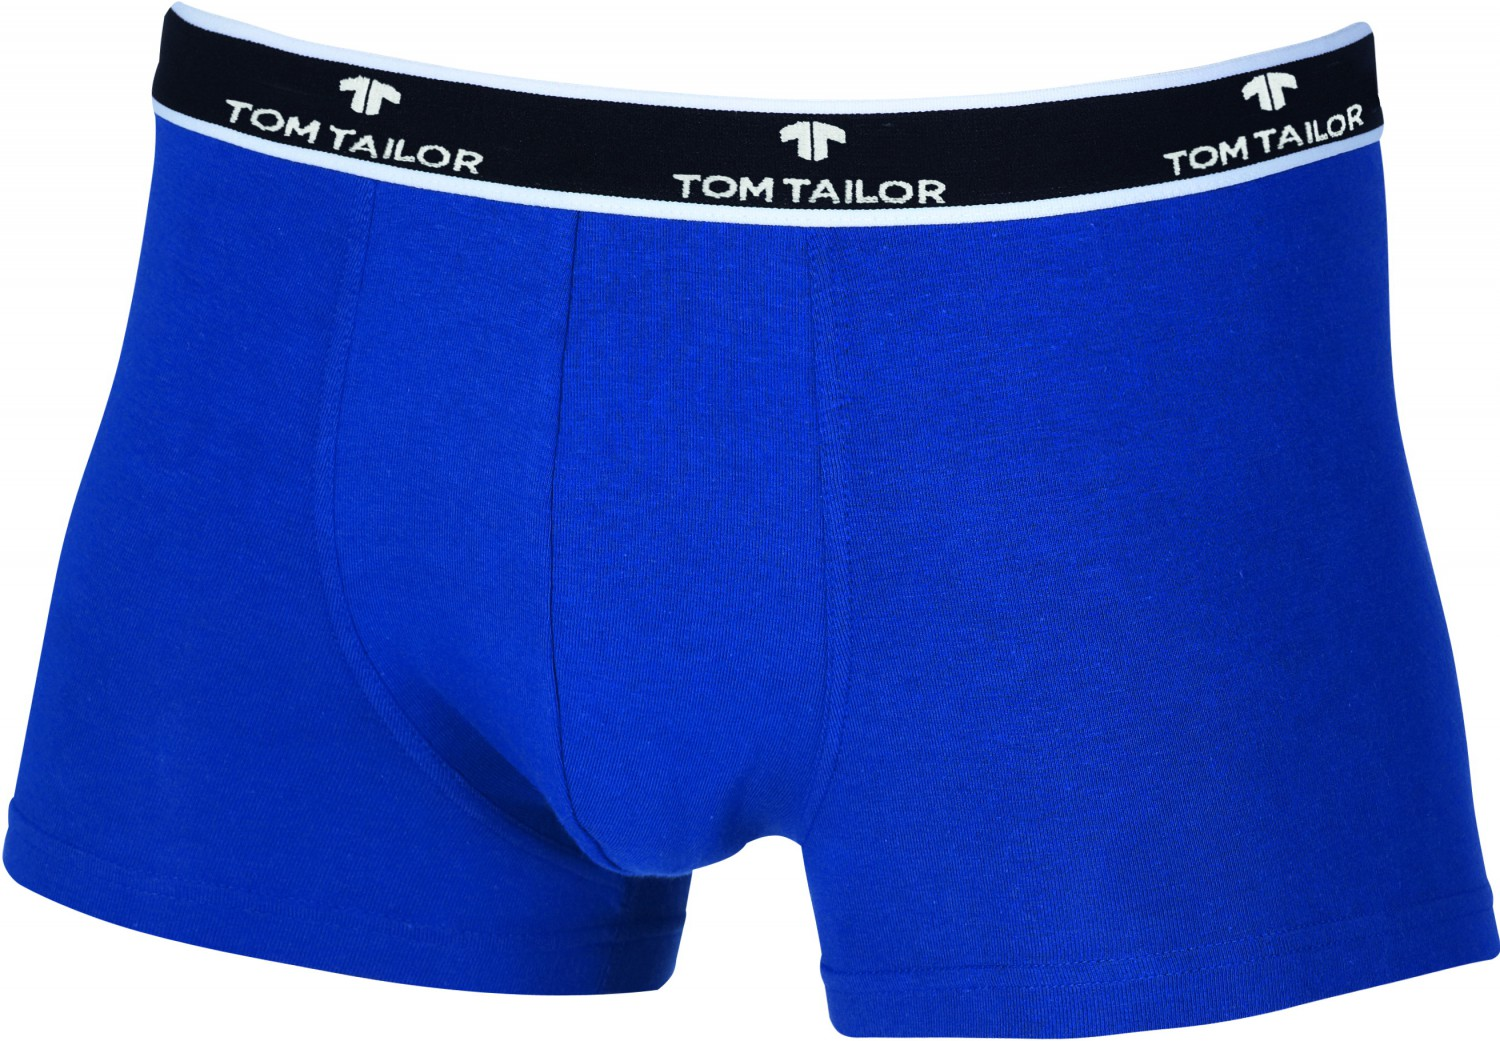 4 st ck tom tailor schwarz blau boxershorts pant shorts. Black Bedroom Furniture Sets. Home Design Ideas